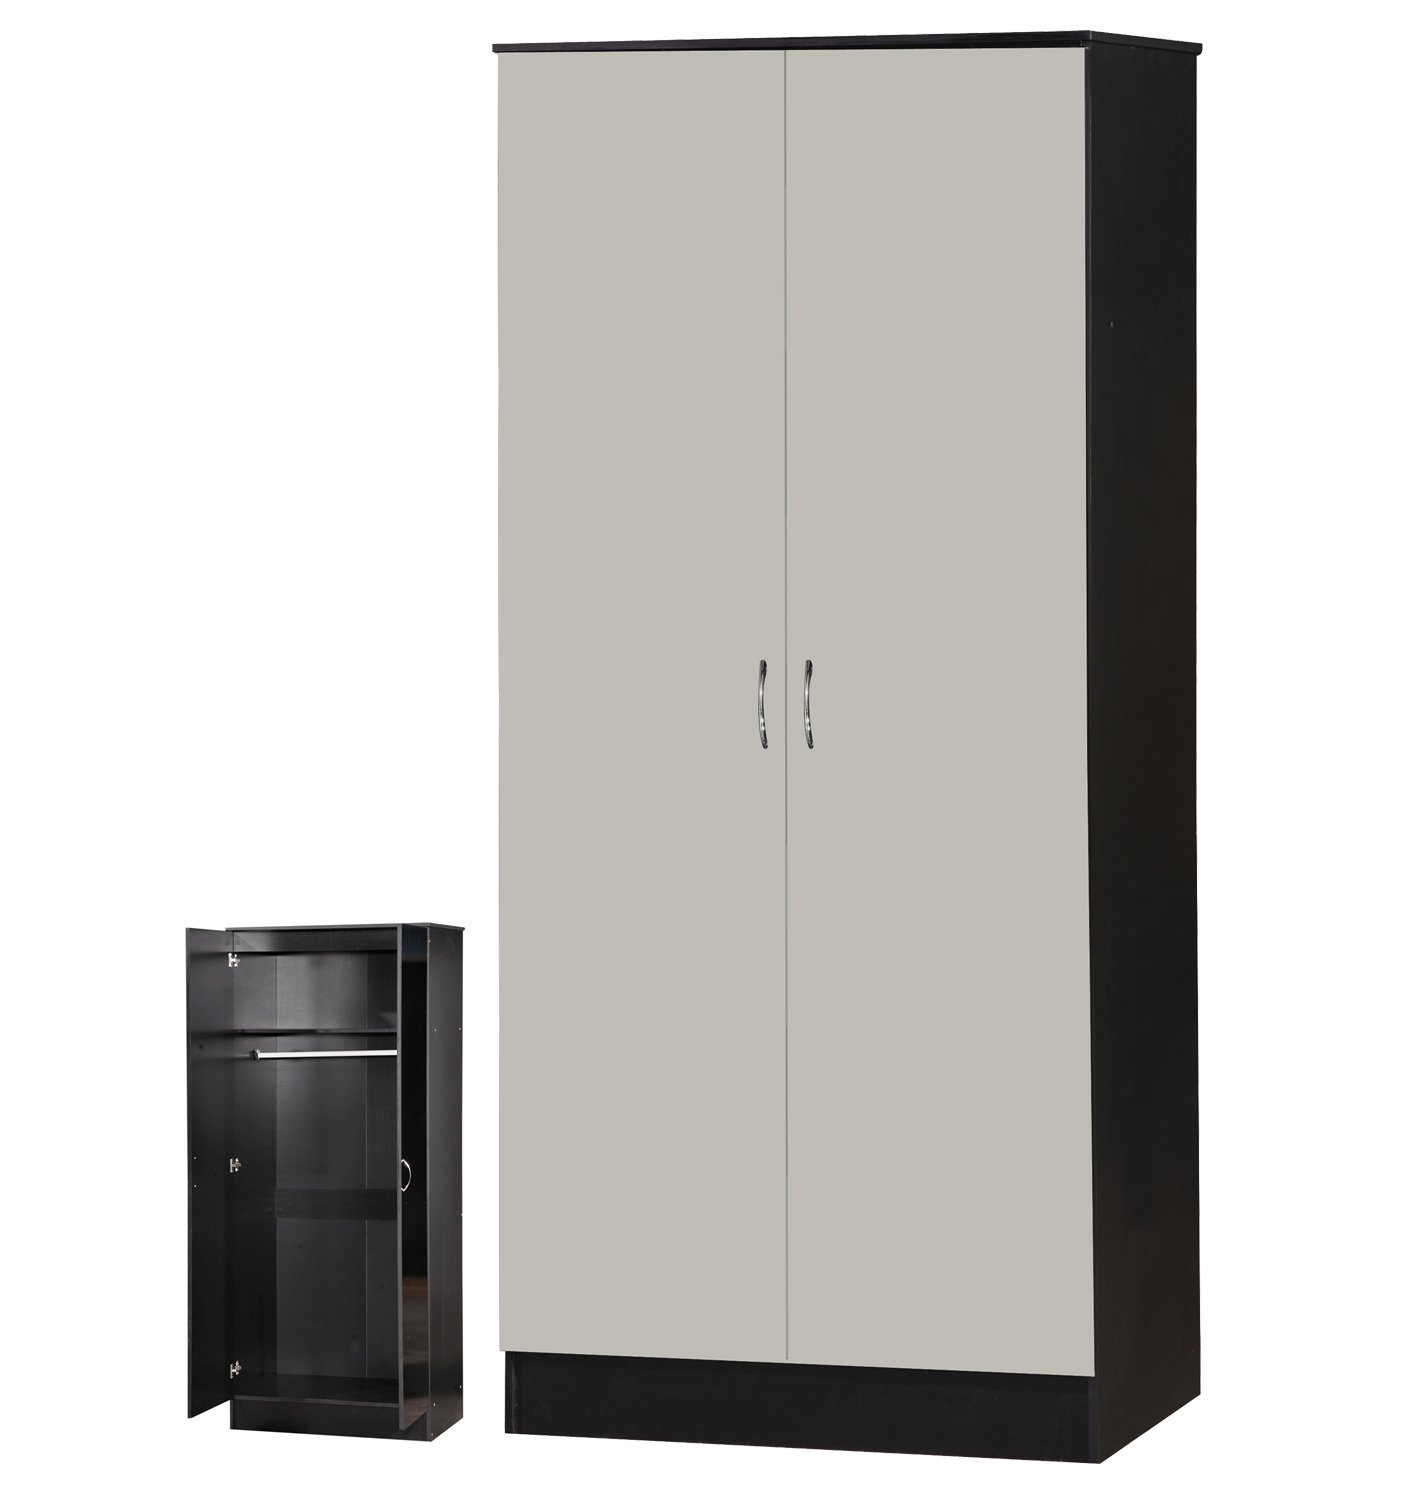 Alpha High Gloss 2 Door Wardrobe with Shelf and Hanging Rail - Bedroom Furniture (Black) ARKFW